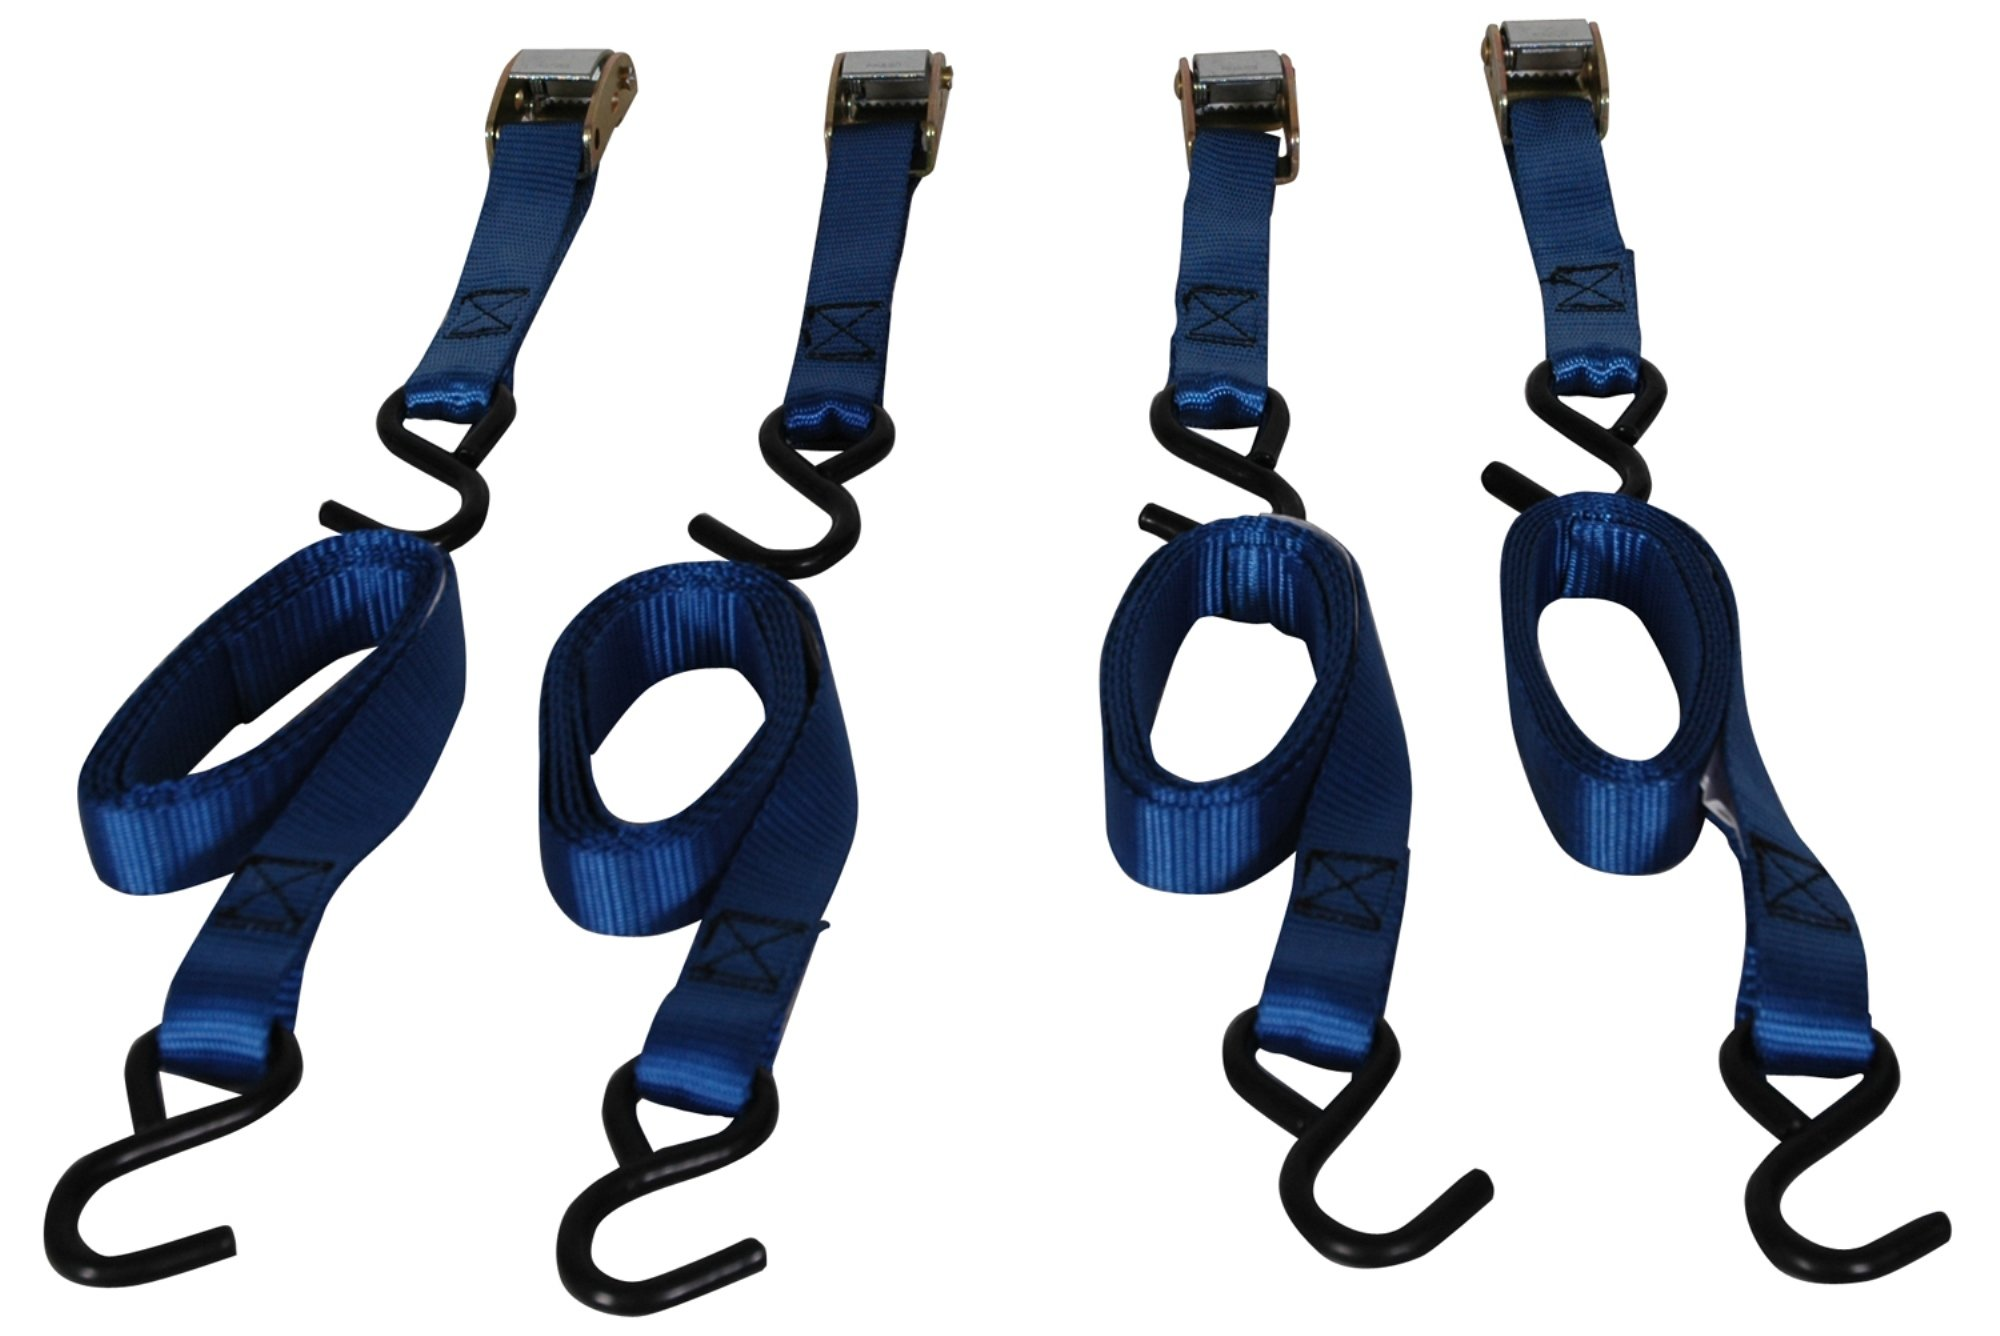 Highland 9210600 6' Blue Cambuckle Tie Down with Hooks - 4 piece